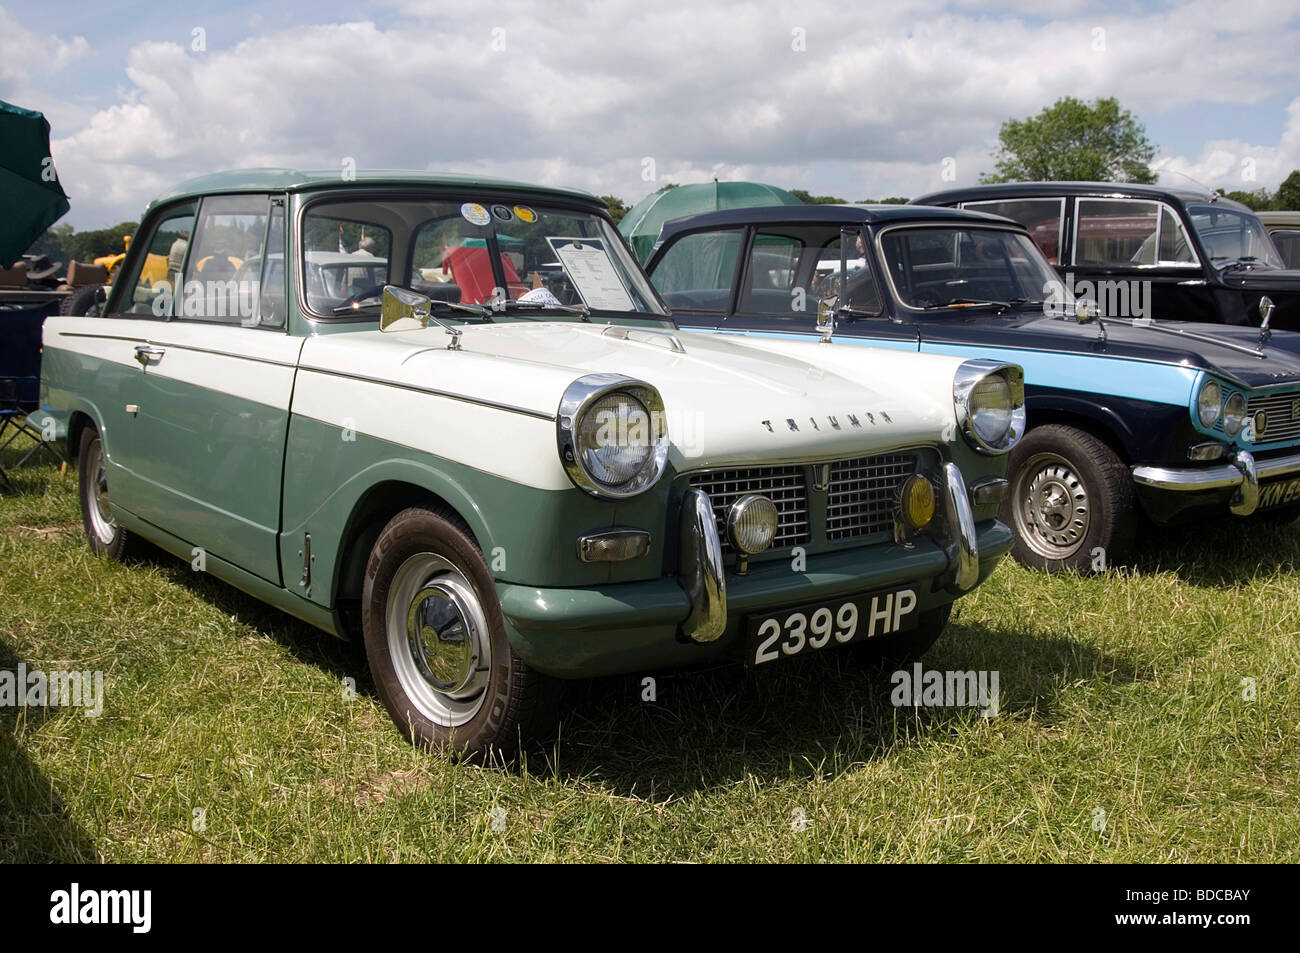 Triumph Car 1960s Stock Photos & Triumph Car 1960s Stock Images - Alamy